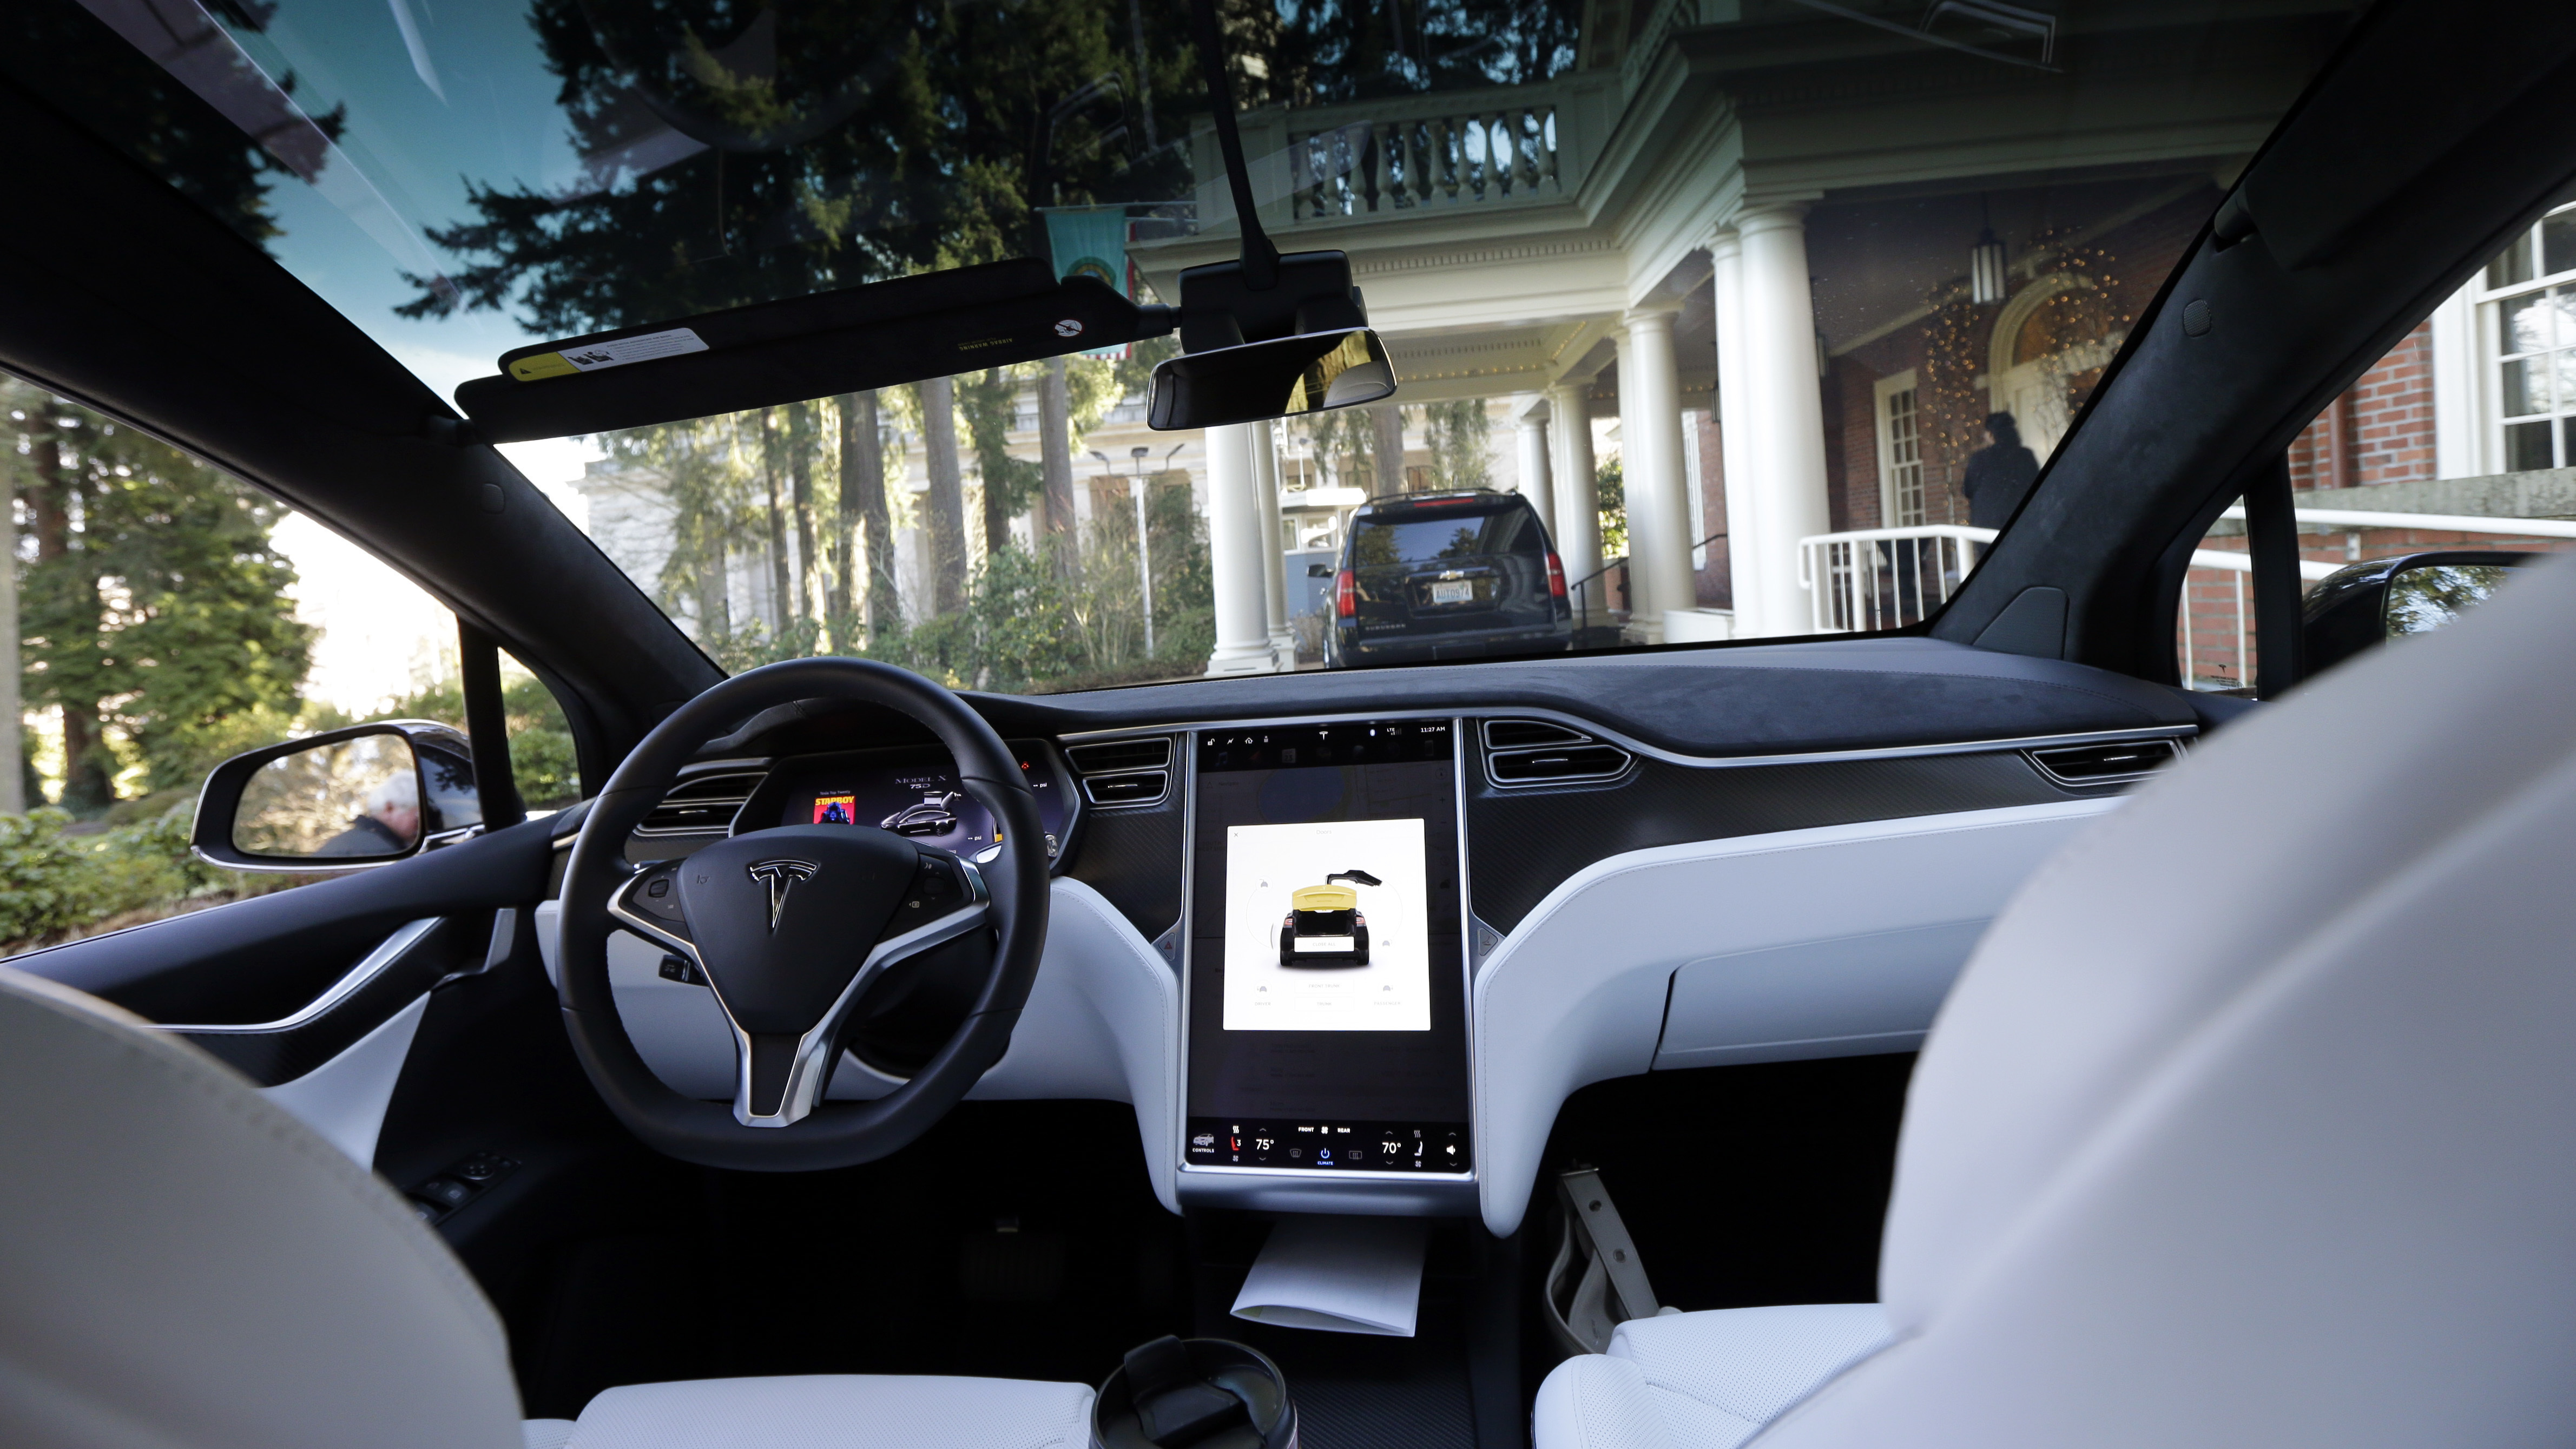 no driver input detected in seconds before deadly tesla crash ntsb finds npr illinois no driver input detected in seconds before deadly tesla crash ntsb finds npr illinois